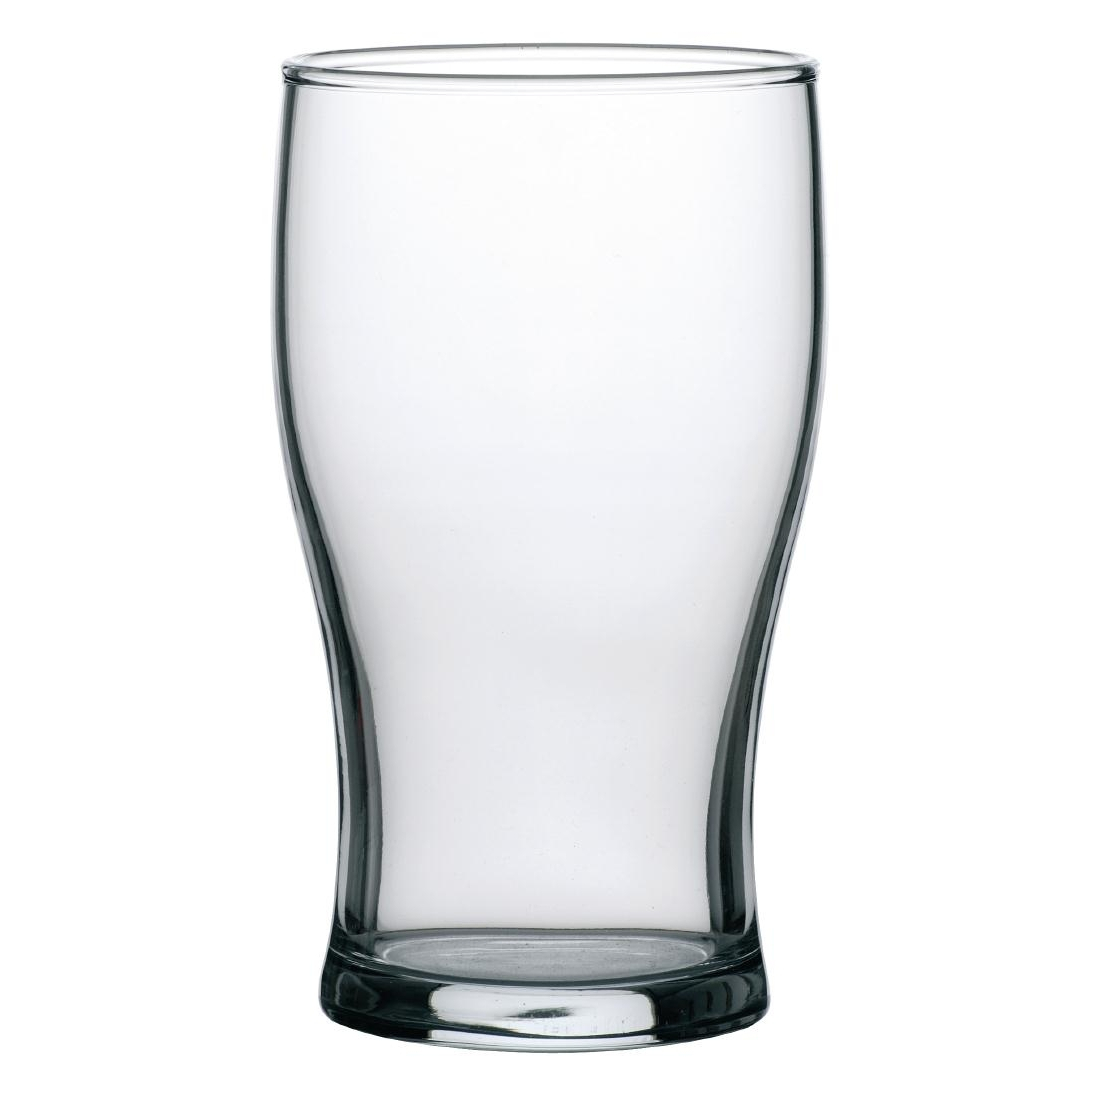 Arcoroc Tulip Beer Glasses 285ml CE Marked